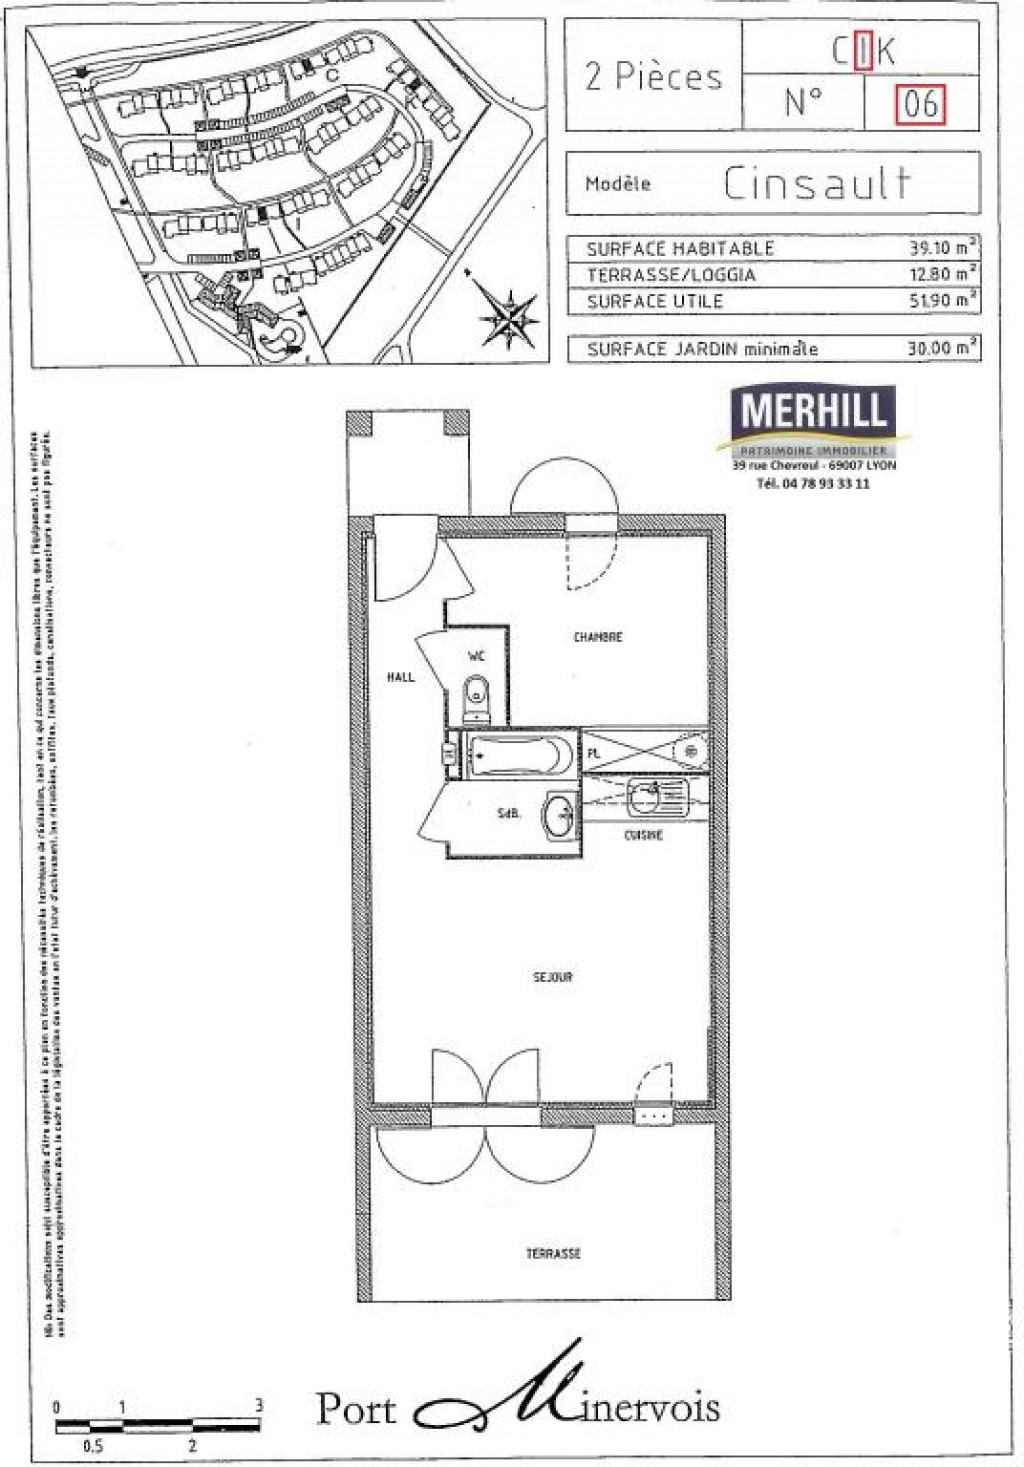 PORT MINERVOIS - Lot I 06 - Plan